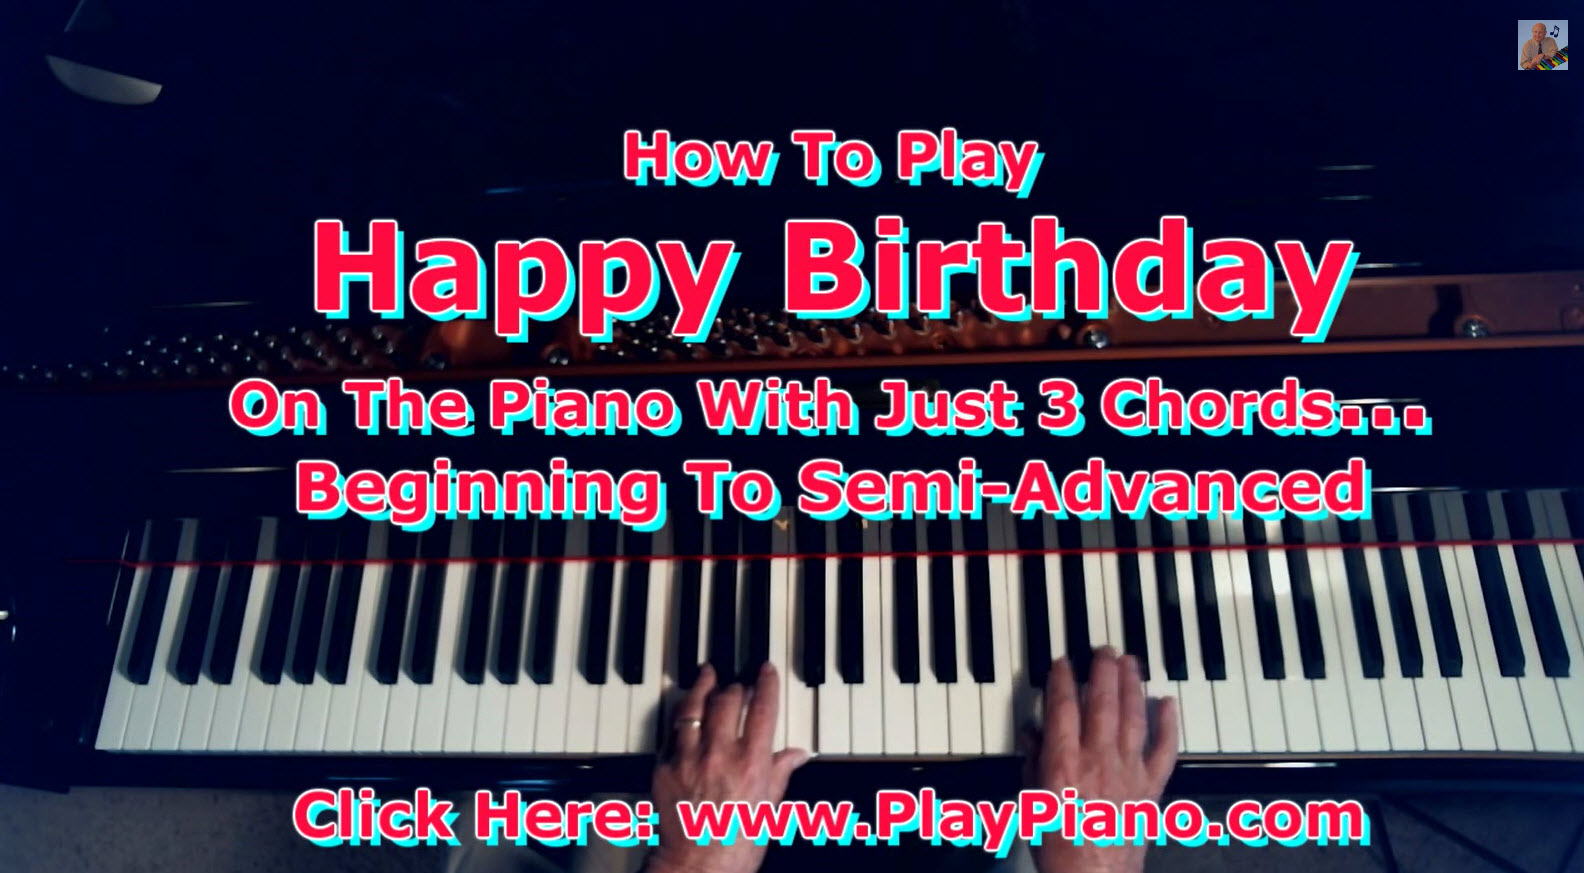 How To Play Happy Birthday On The Piano Using Just 3 Chords